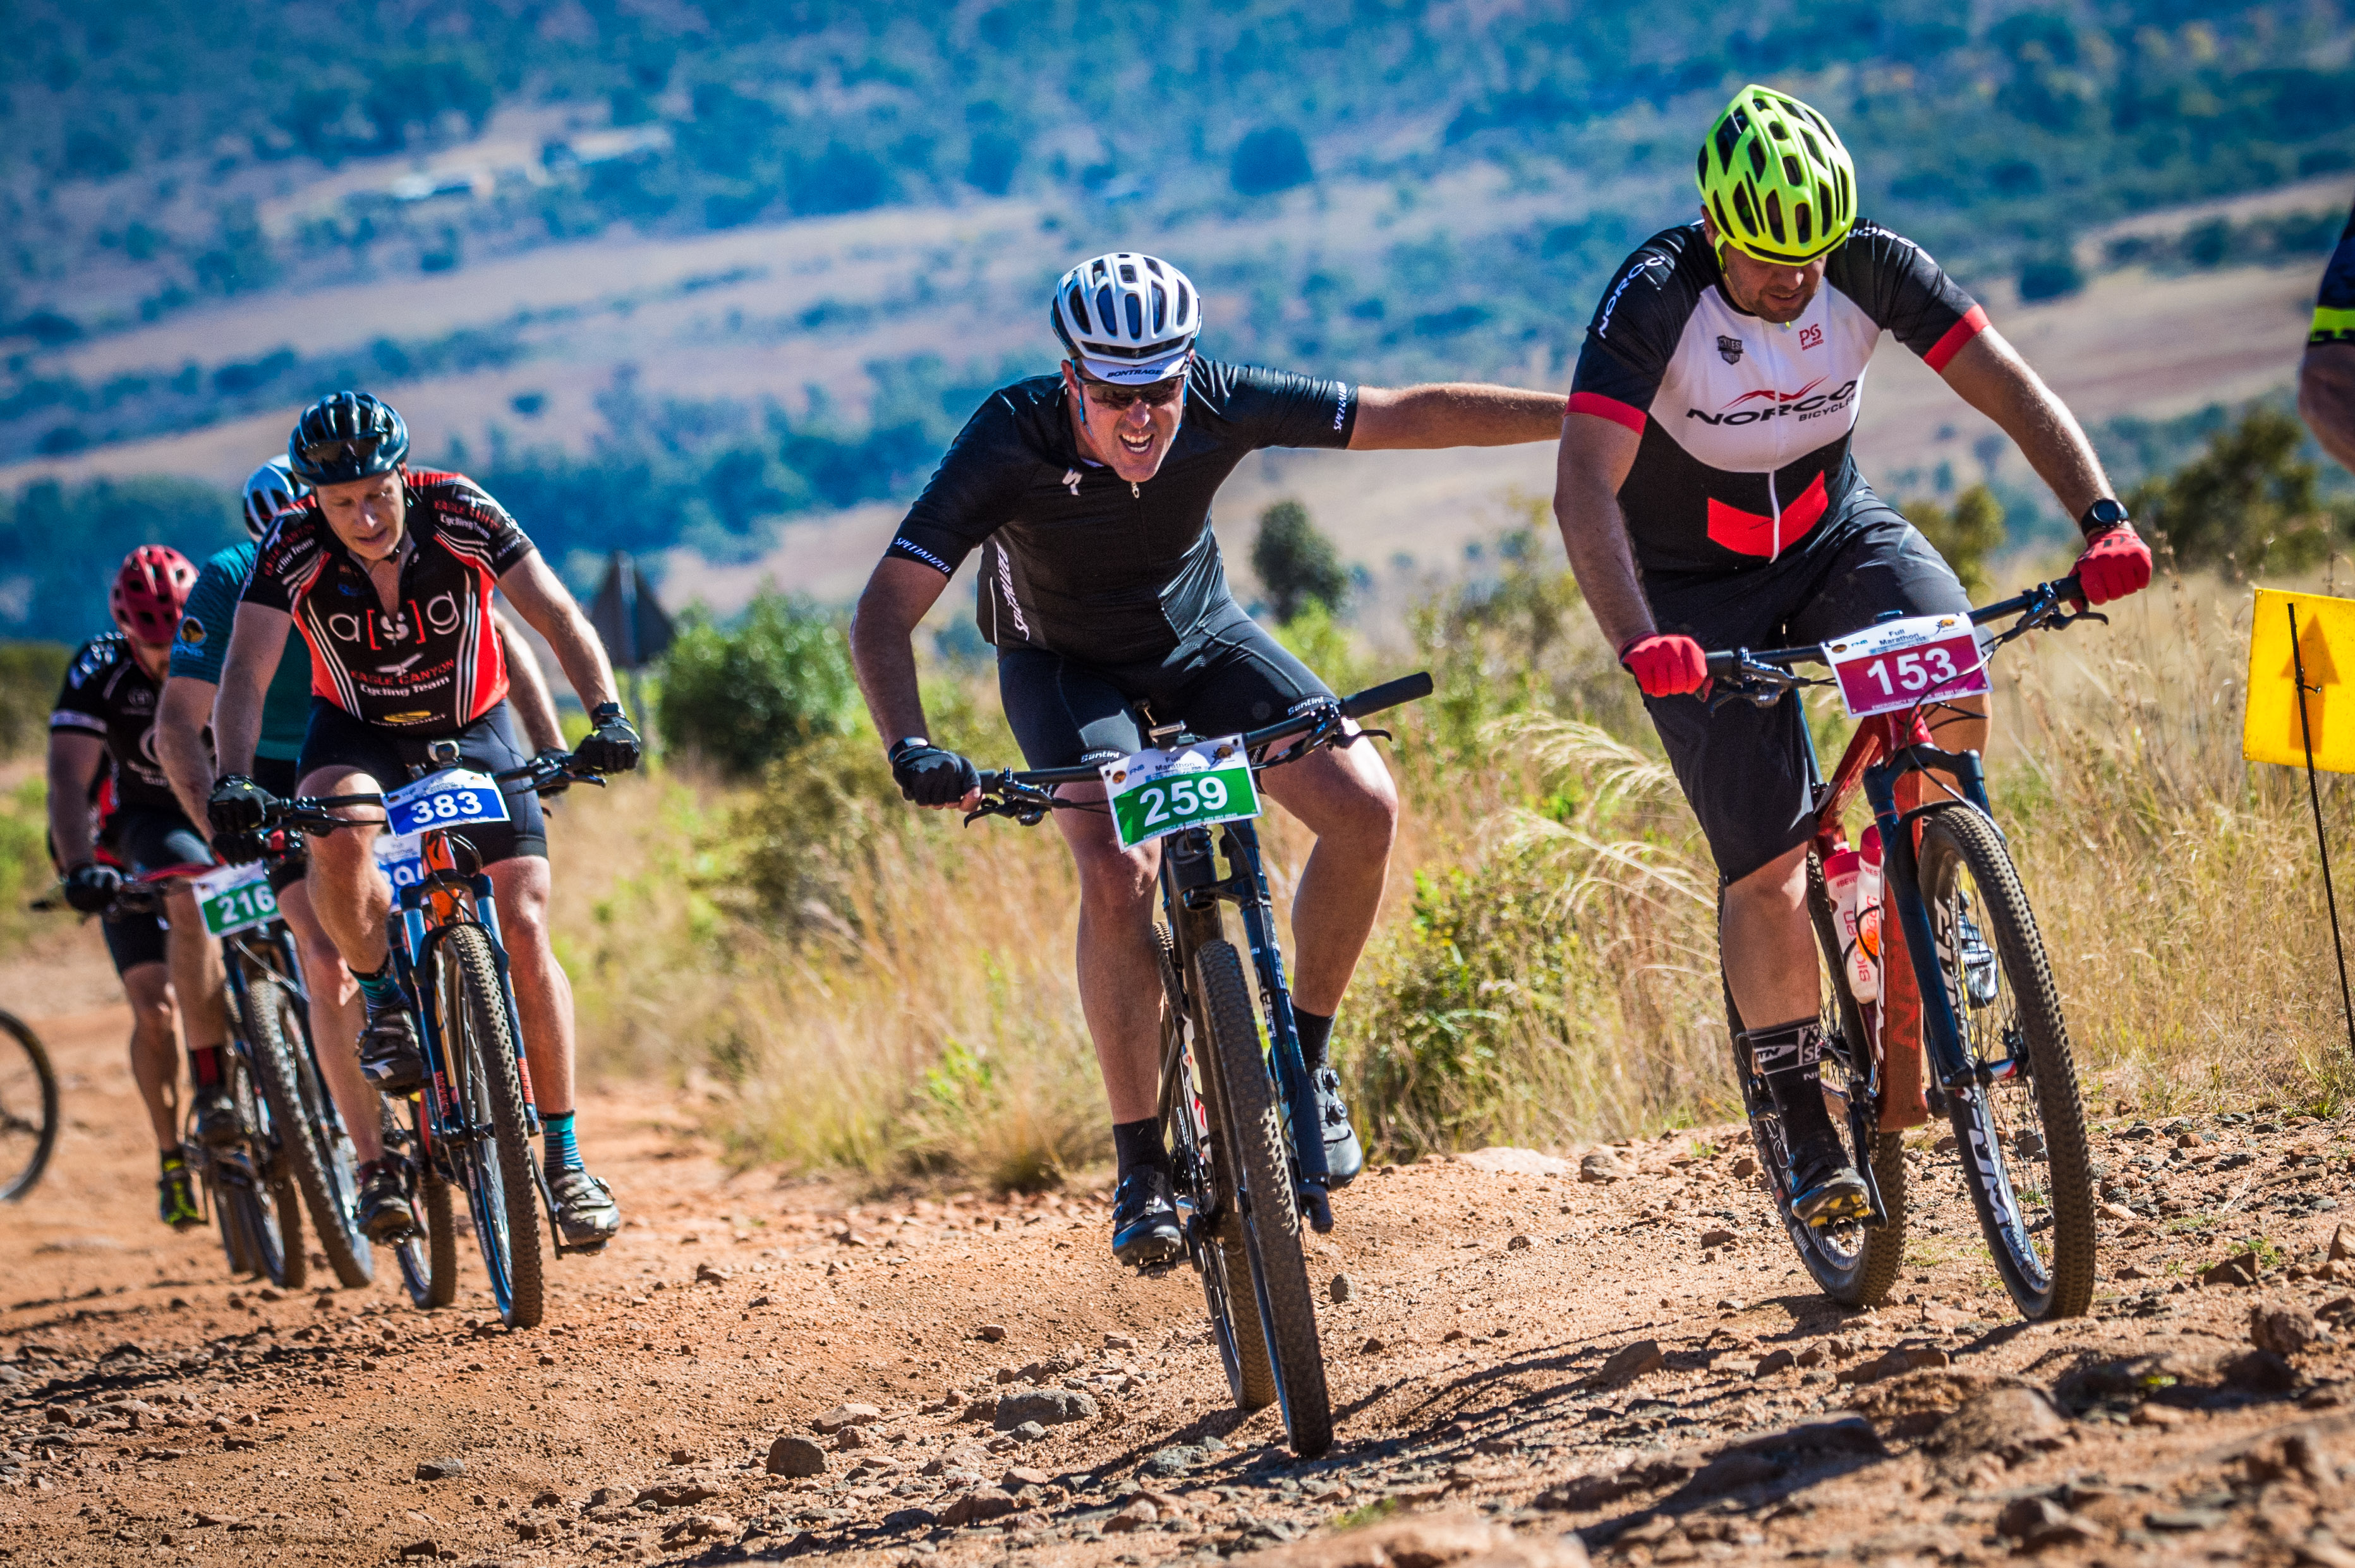 Magaliesberg placed on pedestal at FNB Magalies Monster MTB Classic